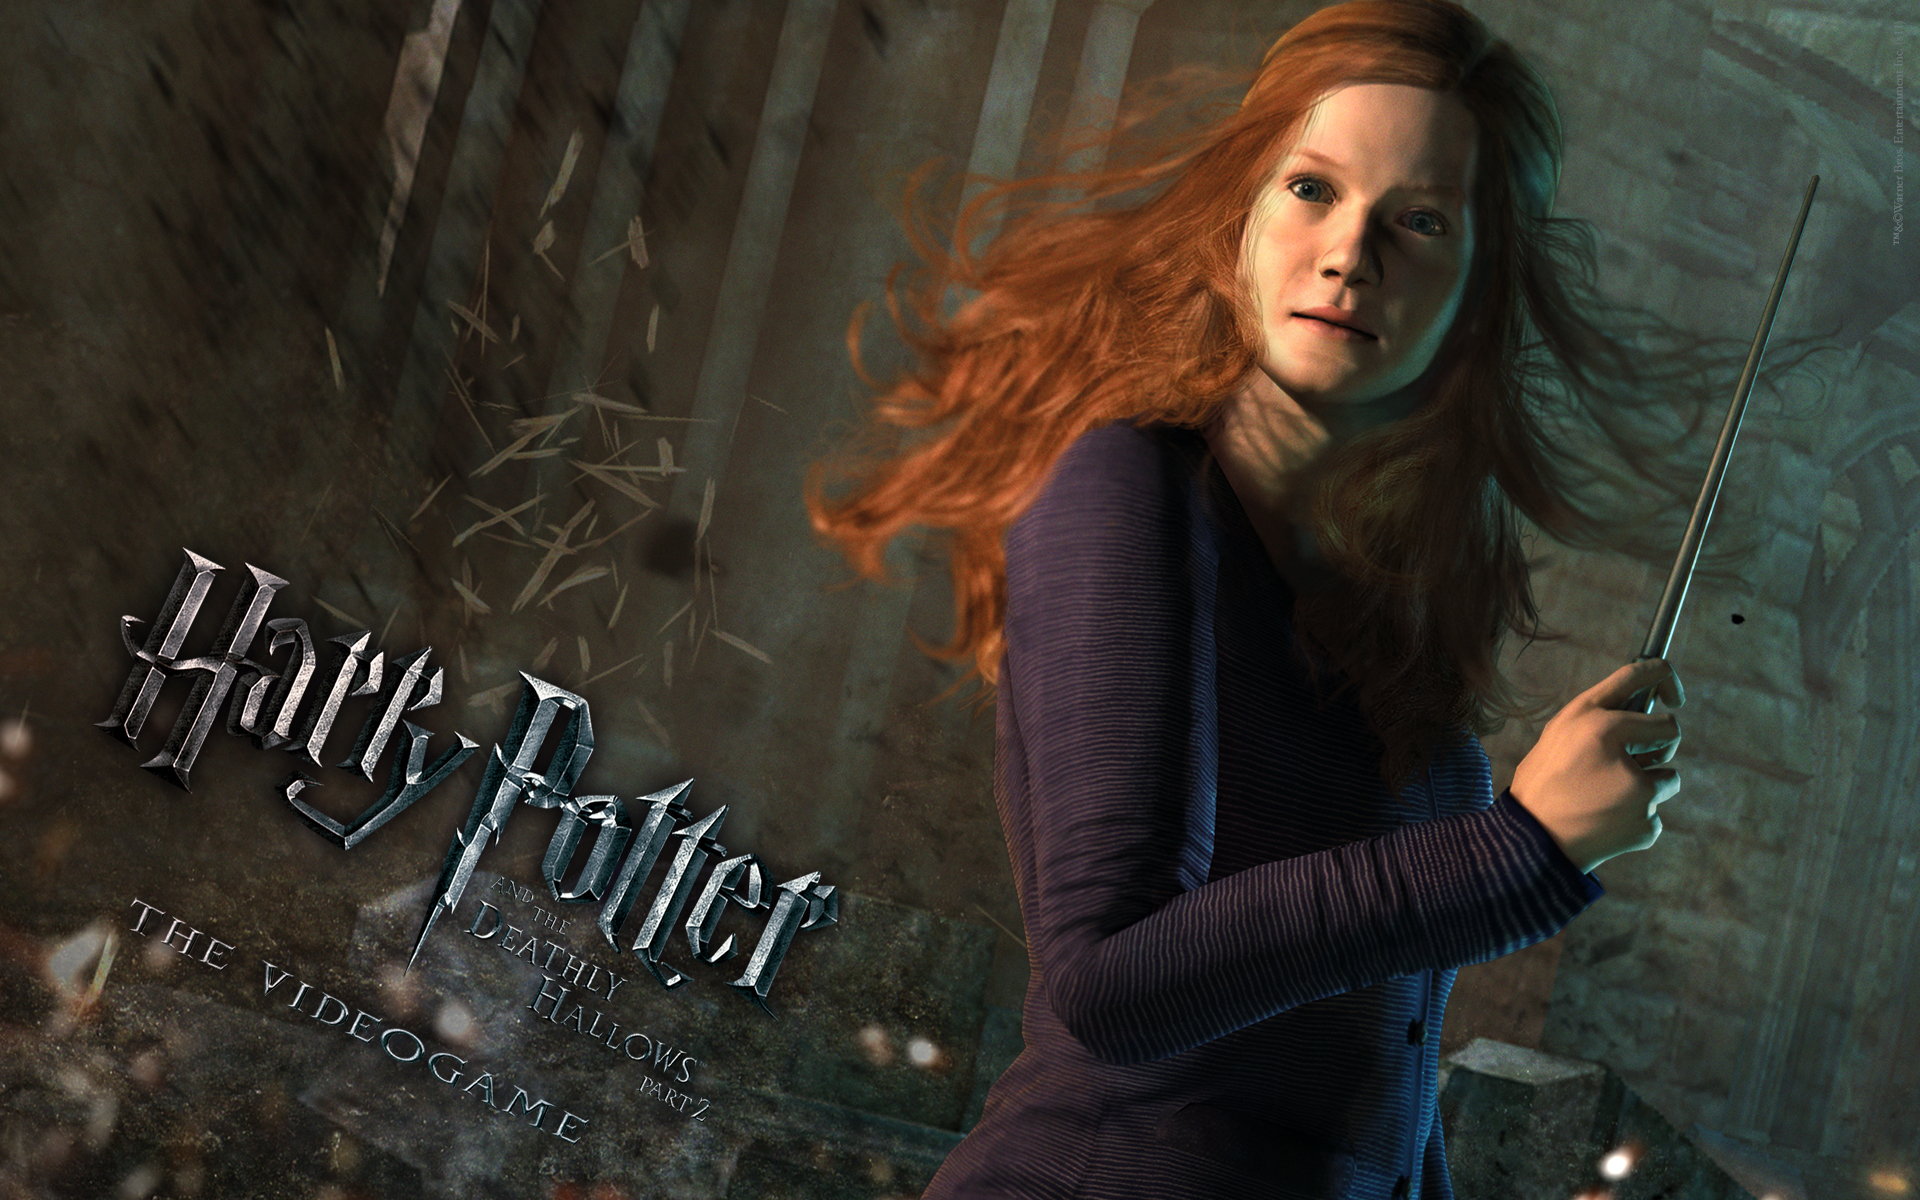 Harry Potter And The Deathly Hallows Part 2 Wallpaper Hd Video